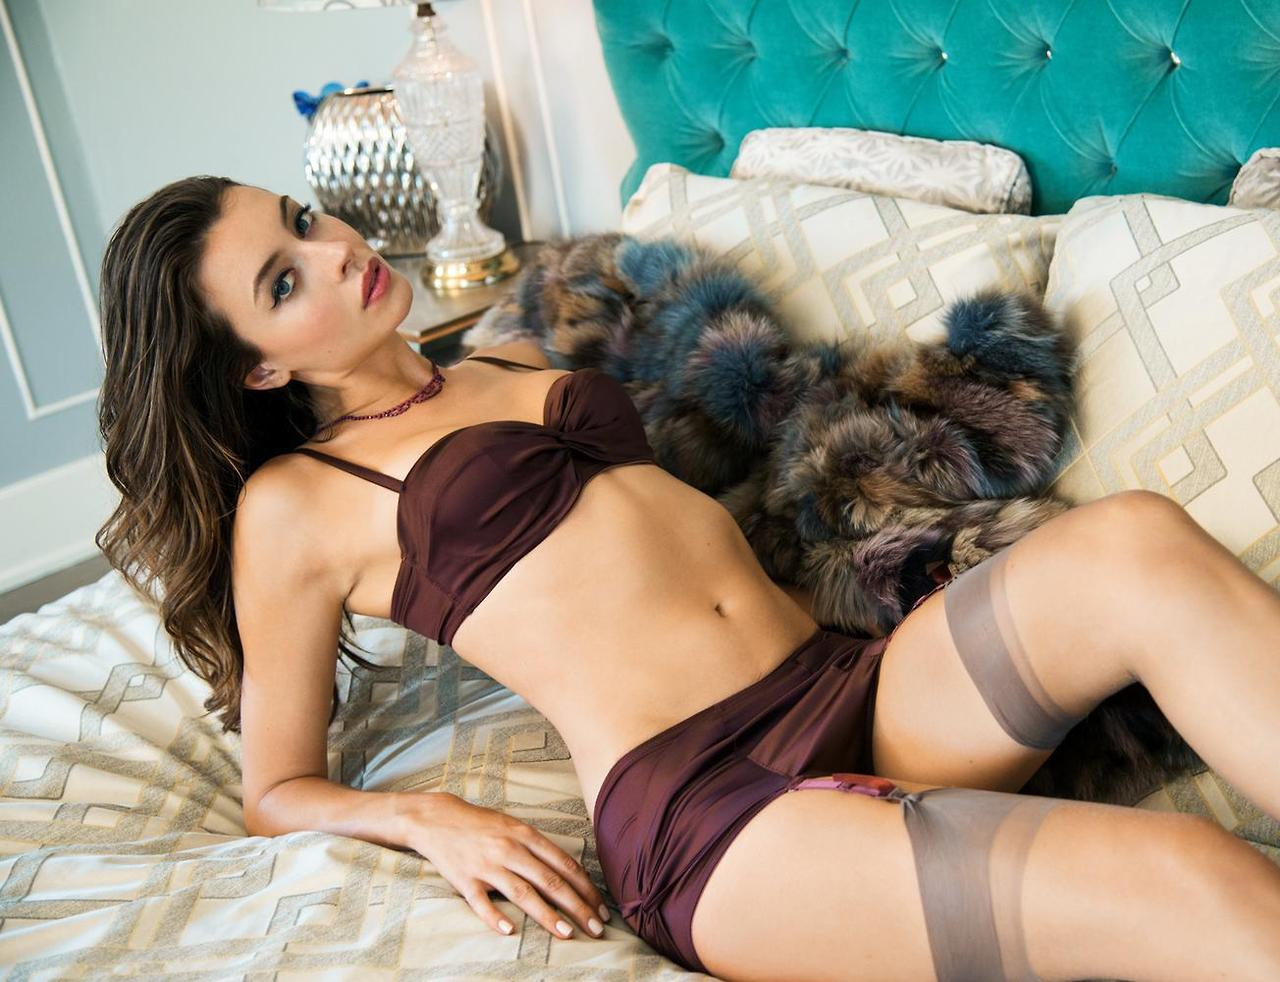 erotic lingerie galleries and women in ff stockings